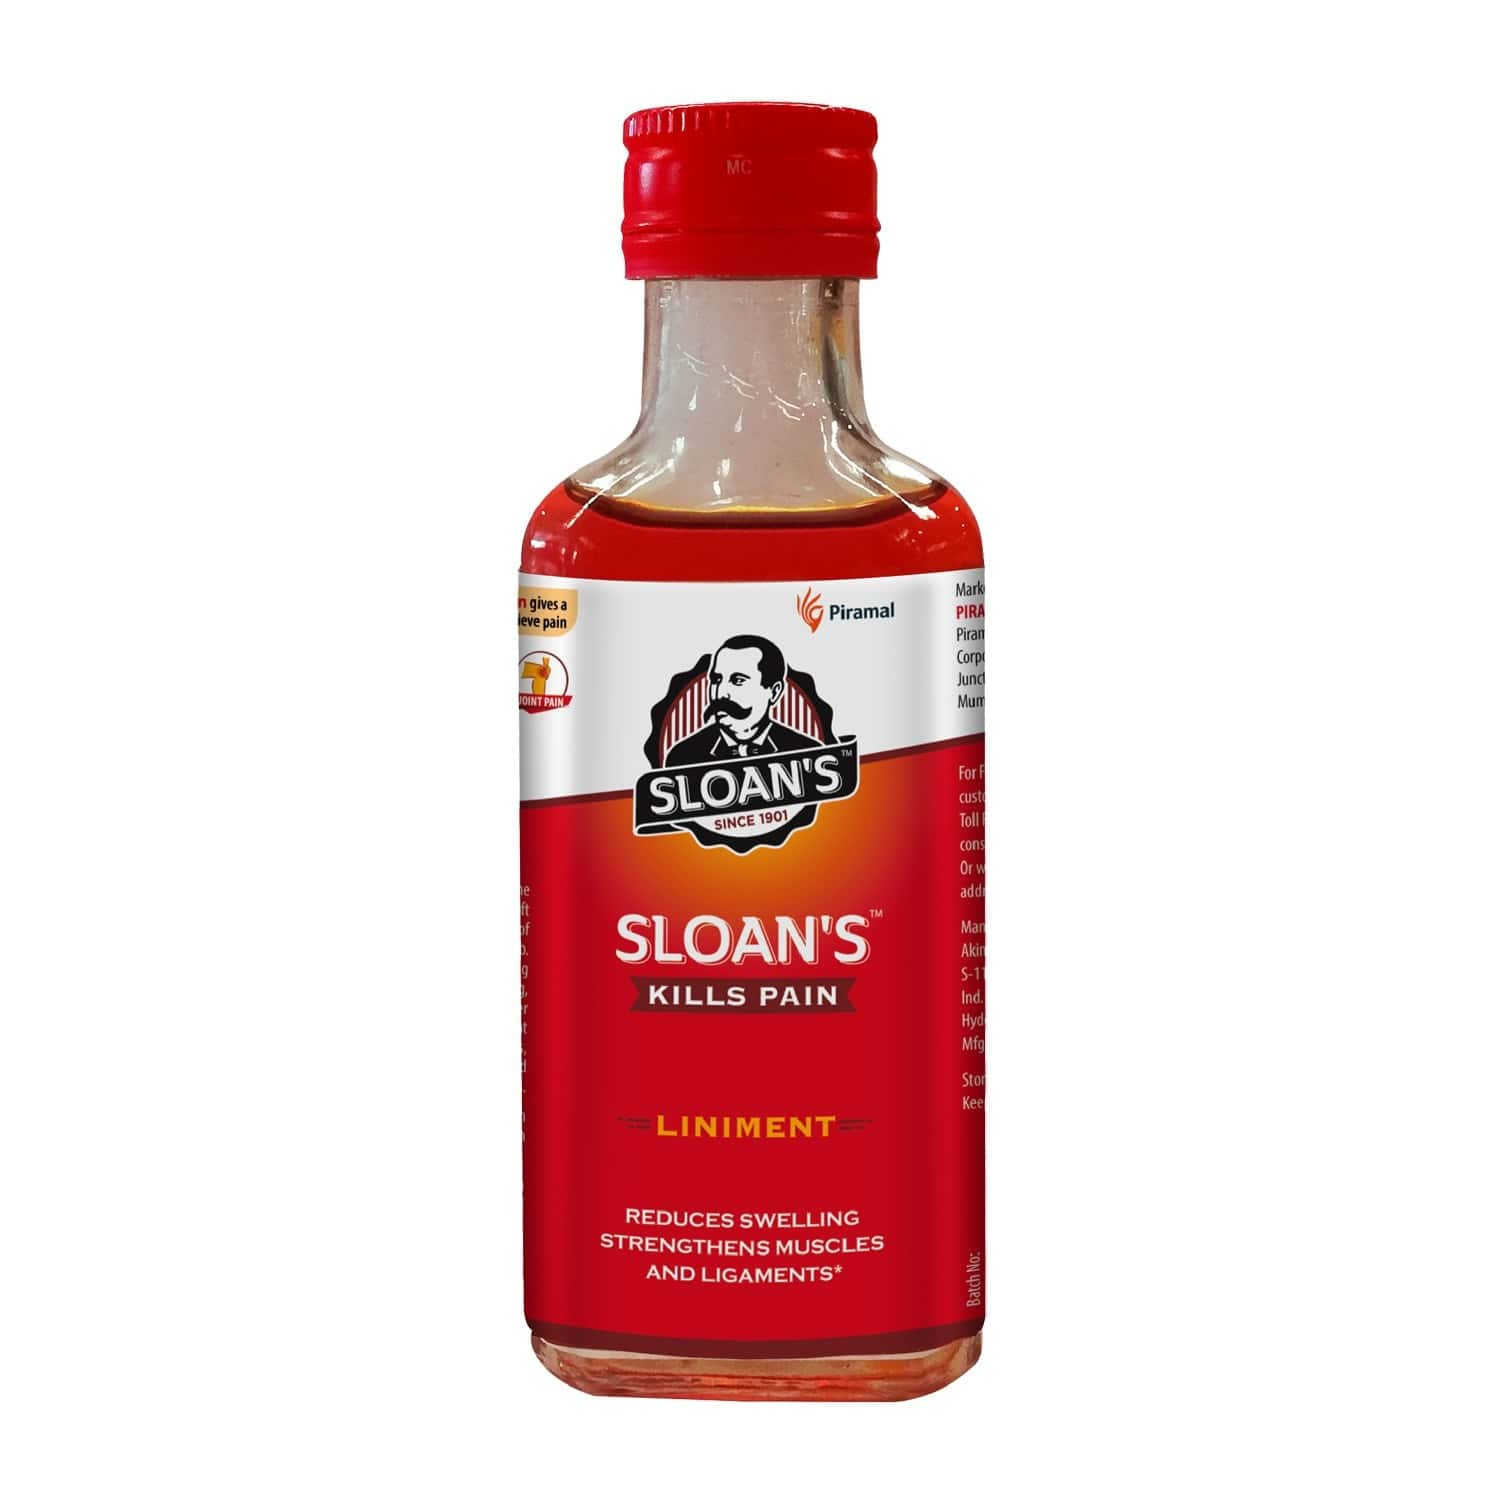 Sloan's Pain Relief Liniment Bottle Of 71ml